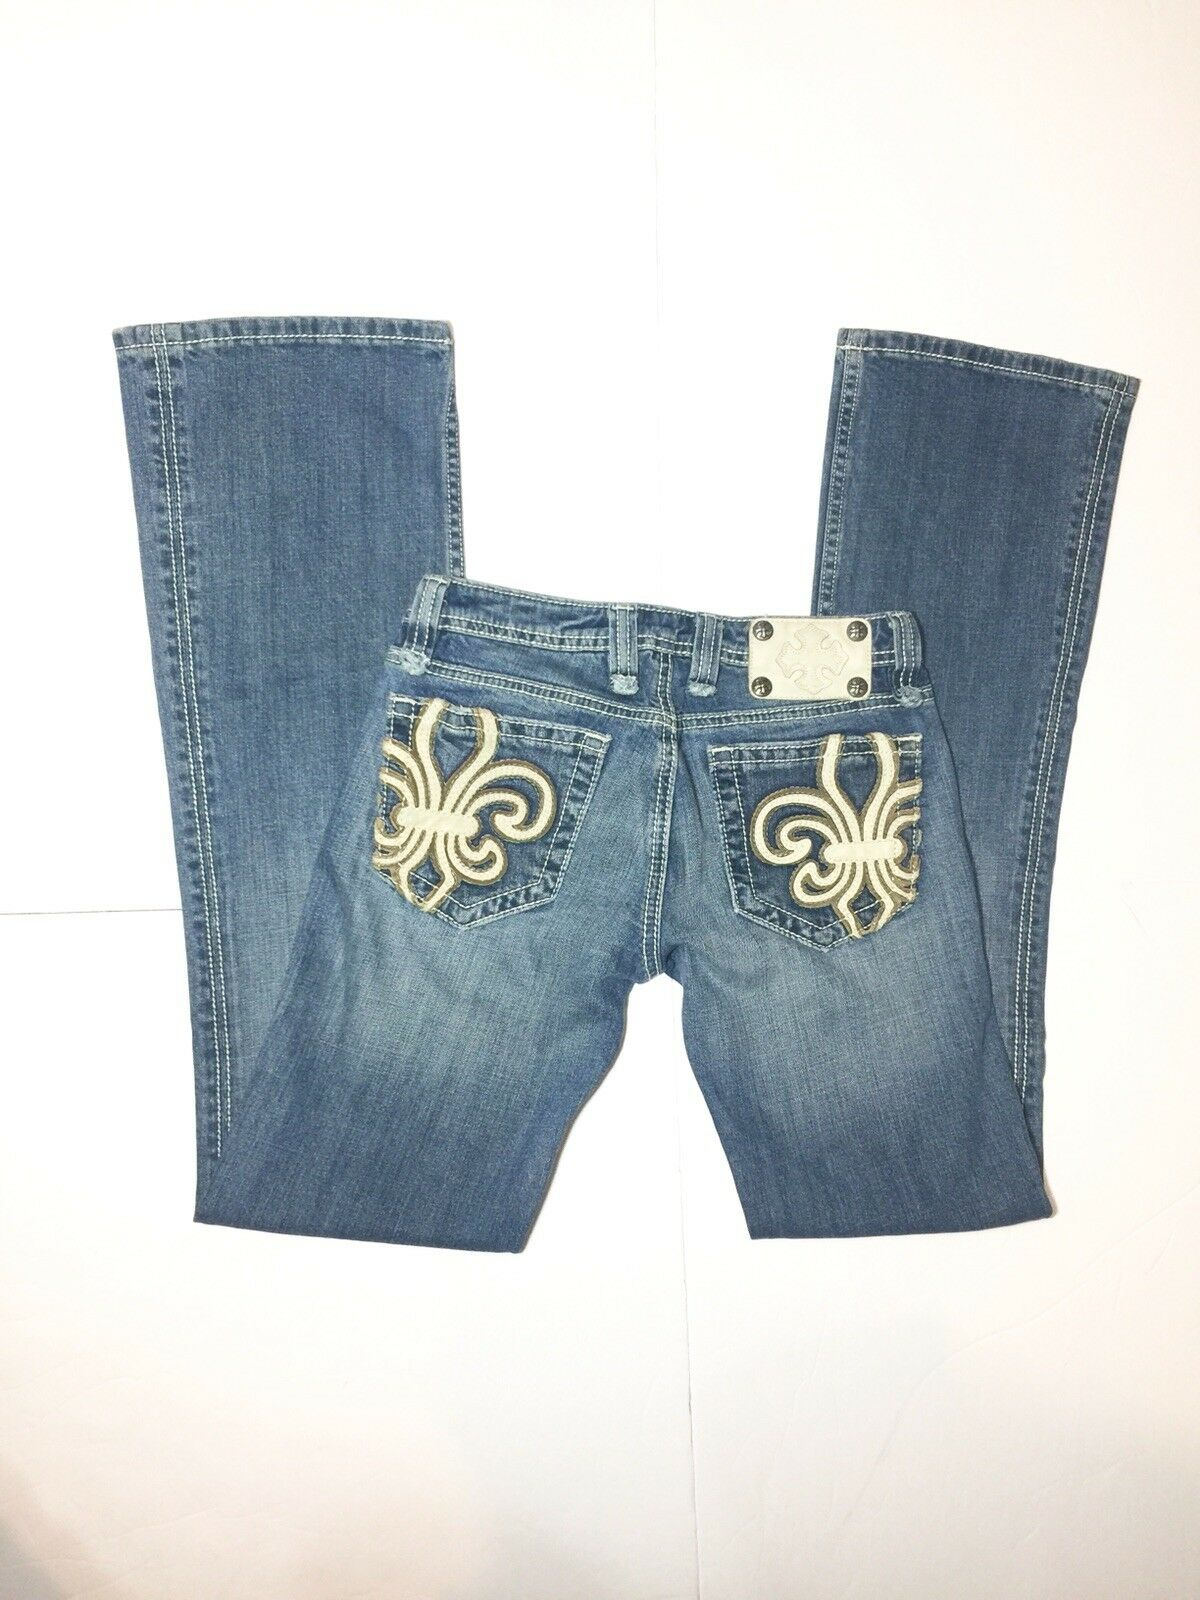 Miss Me Bootcut Jeans Womens Size 26 bluee - Inseam 32